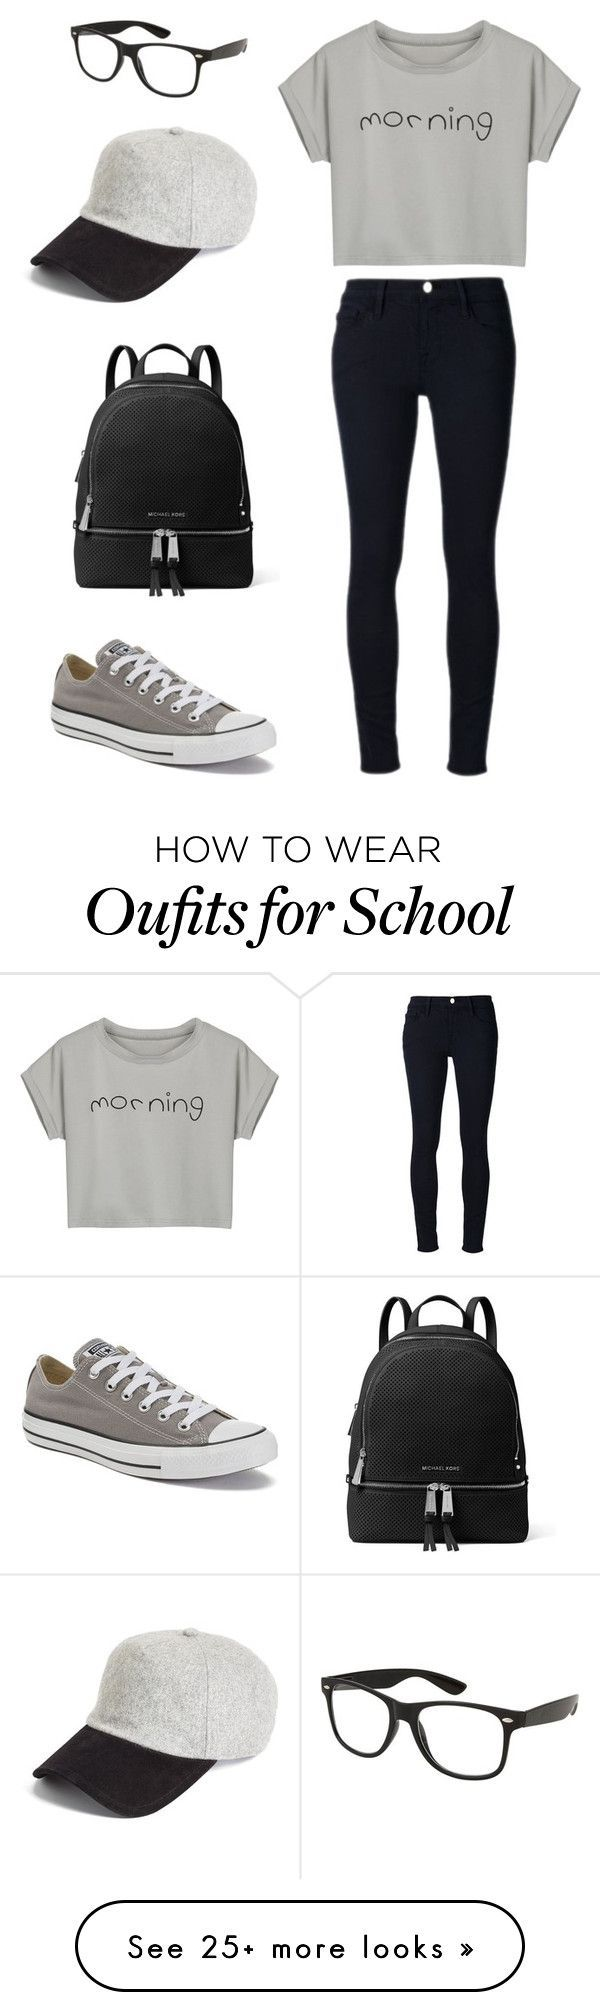 """School outfit"" by sarahaider on Polyvore featuring Frame Denim, Converse, MICHAEL Michael Kors, rag & bone and WithChic"